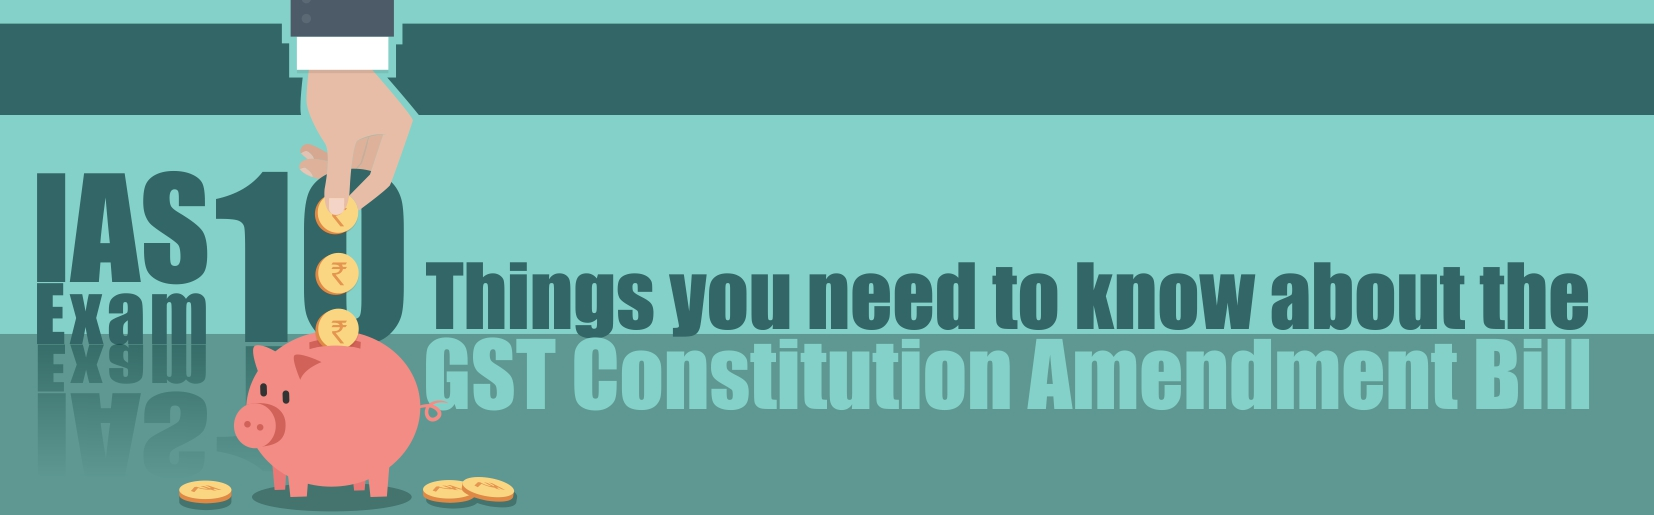 IAS Exam: 10 things you need to know about the GST Constitution Amendment Bill